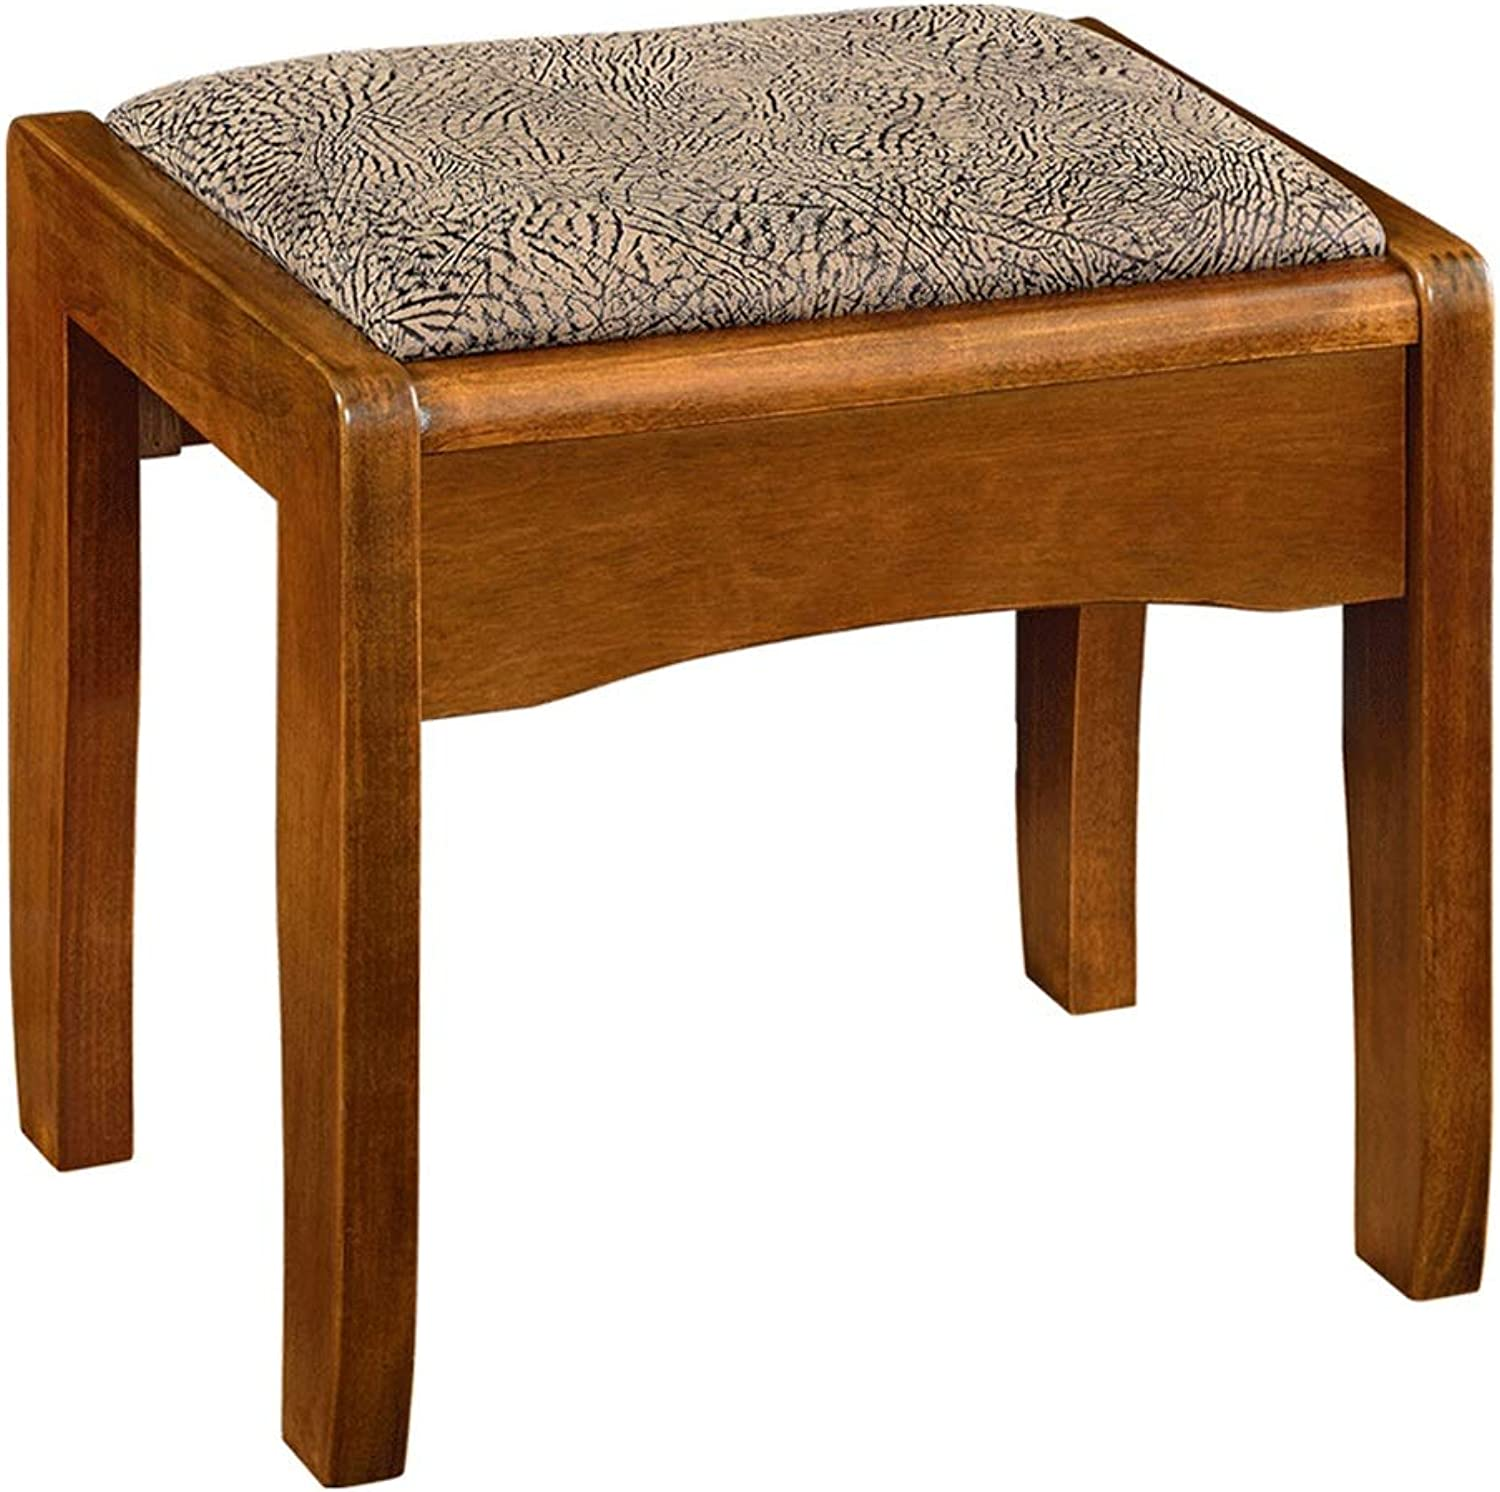 Solid Wood Dressing Stool Bedroom Makeup Stool Square Stool Small Apartment Simple Modern Stool